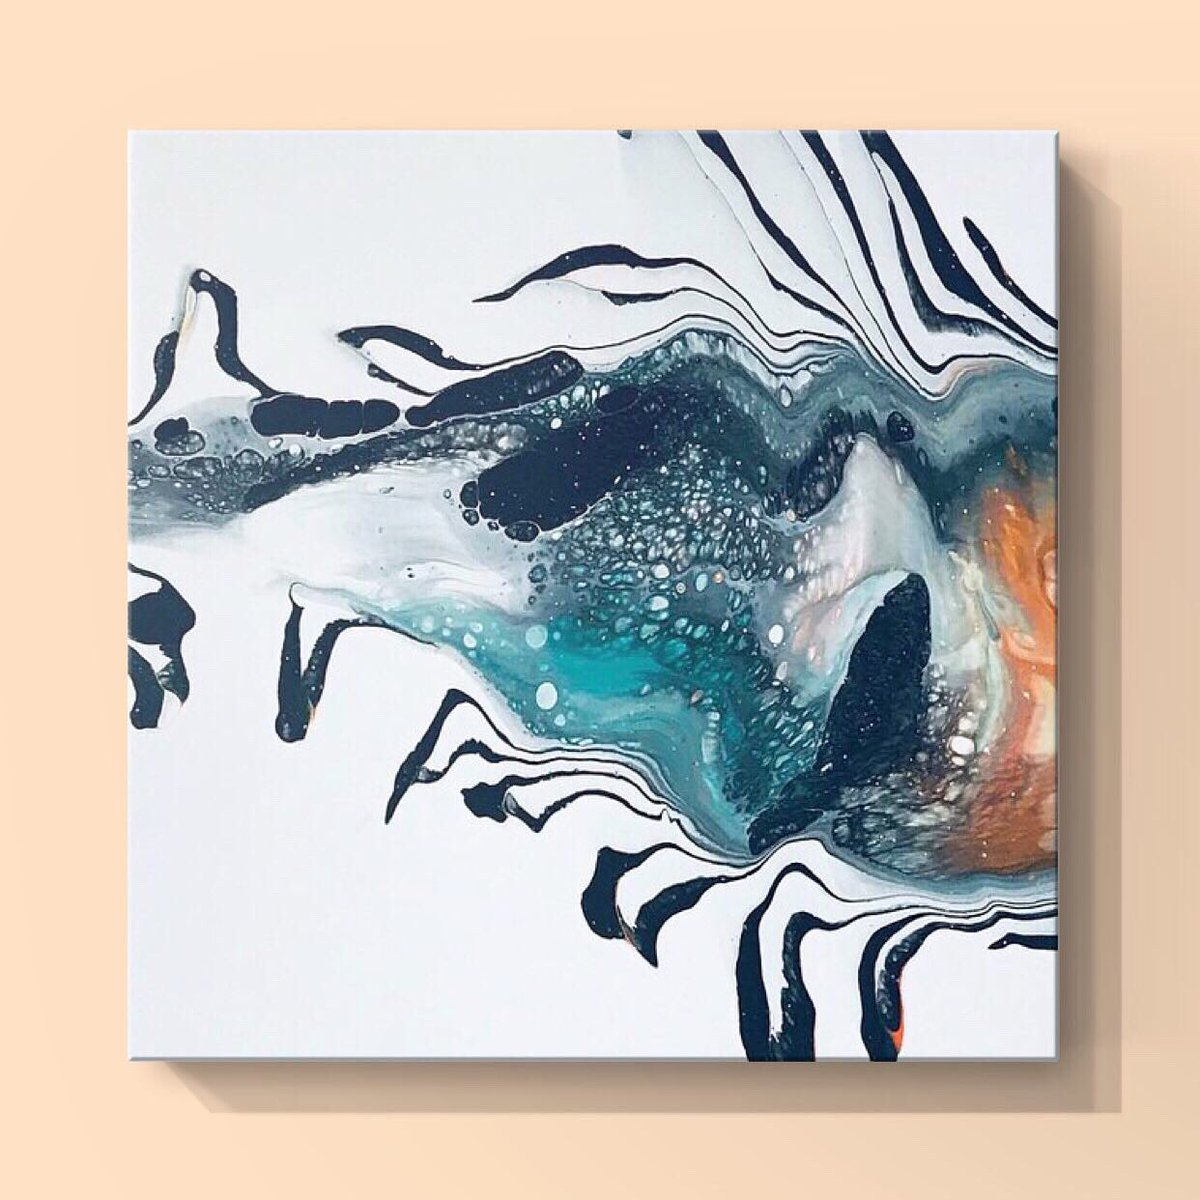 """My """"Fish Tale 2"""" print on canvas! Check out the full collection and #printable options, link to my Fine Art America shop is on bio page. #artprints #printableart #fluidart #abstractart #artcollection https://t.co/pbqsCu3ixy"""